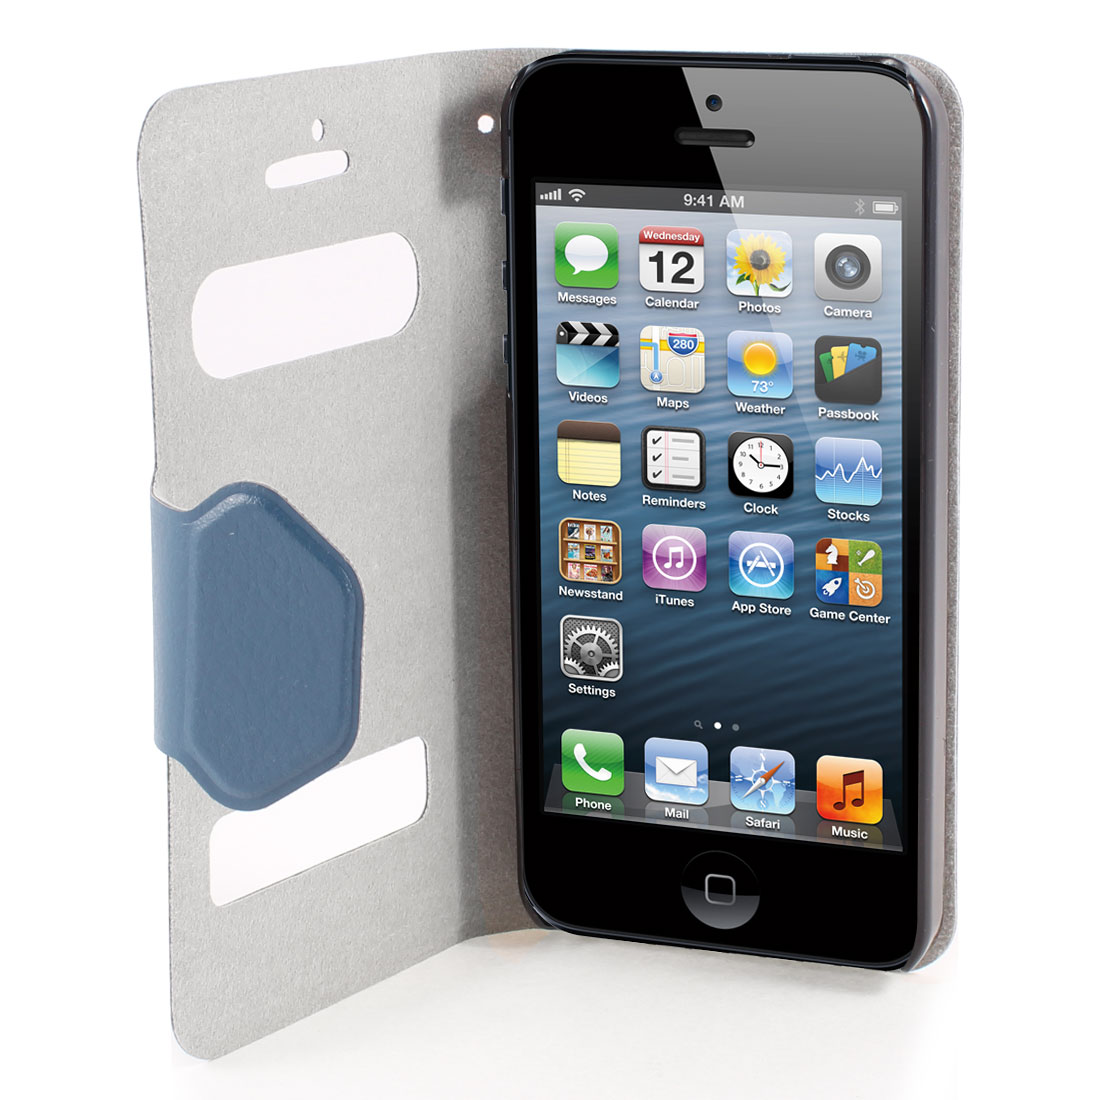 Blue PU Leather Protective Magnetic Closure Flip Case Cover for iPhone 5 5G 5th